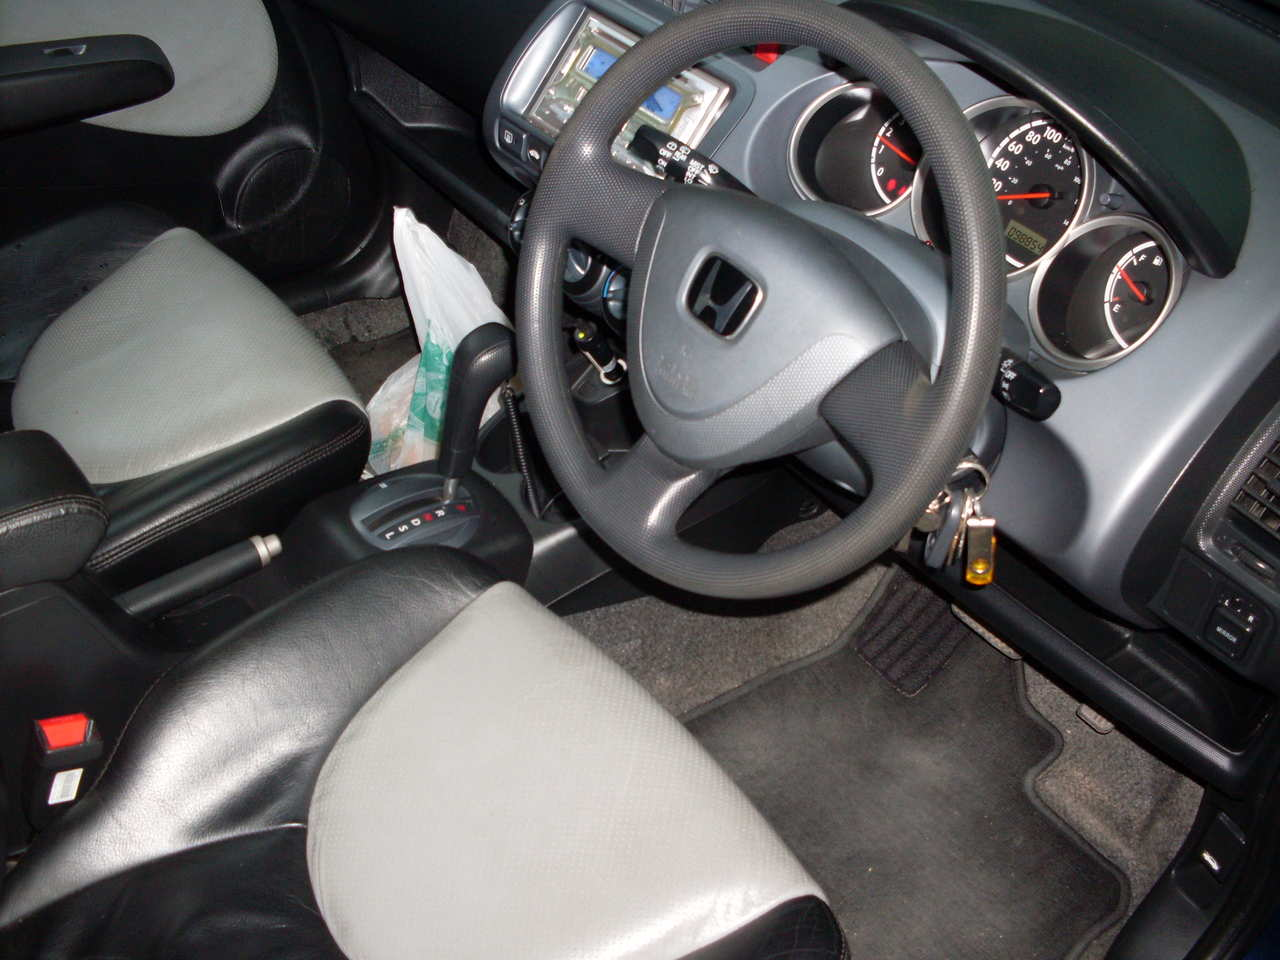 honda jazz 2003 used car car interior design. Black Bedroom Furniture Sets. Home Design Ideas